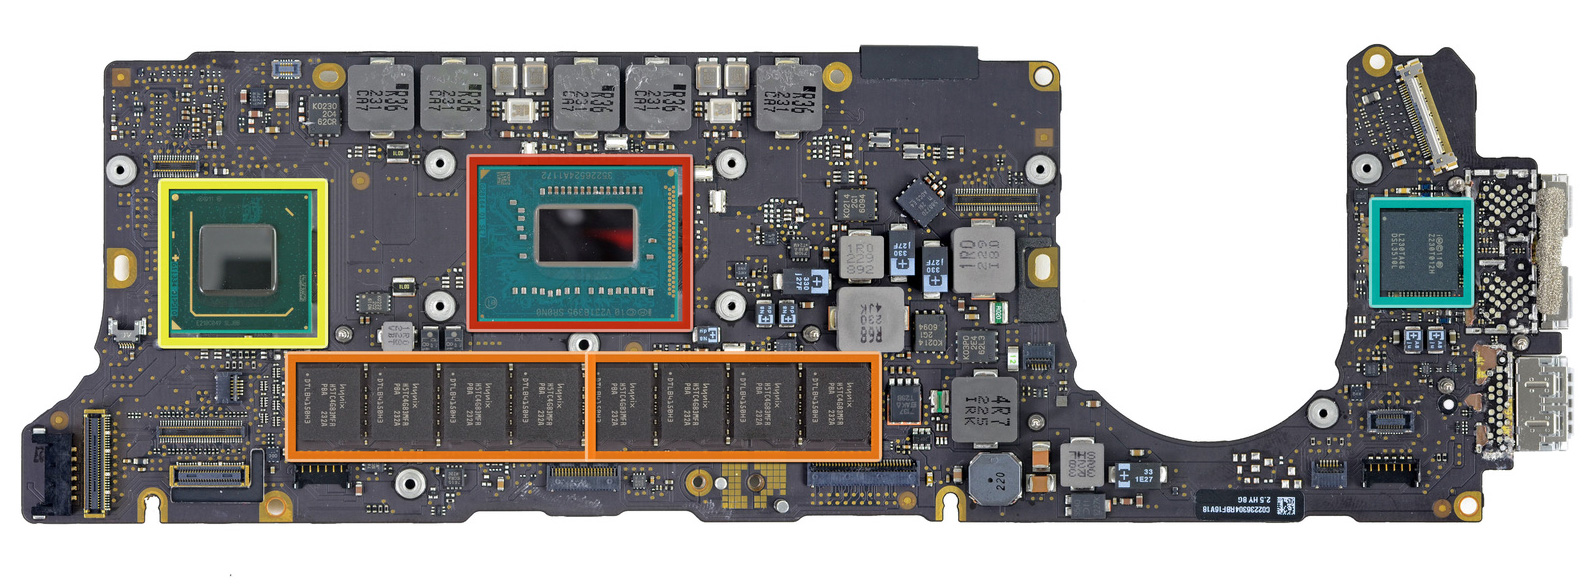 The 13-inch Retina MacBook Pro apparently has no room for a discrete GPU or more than 8GB of RAM.